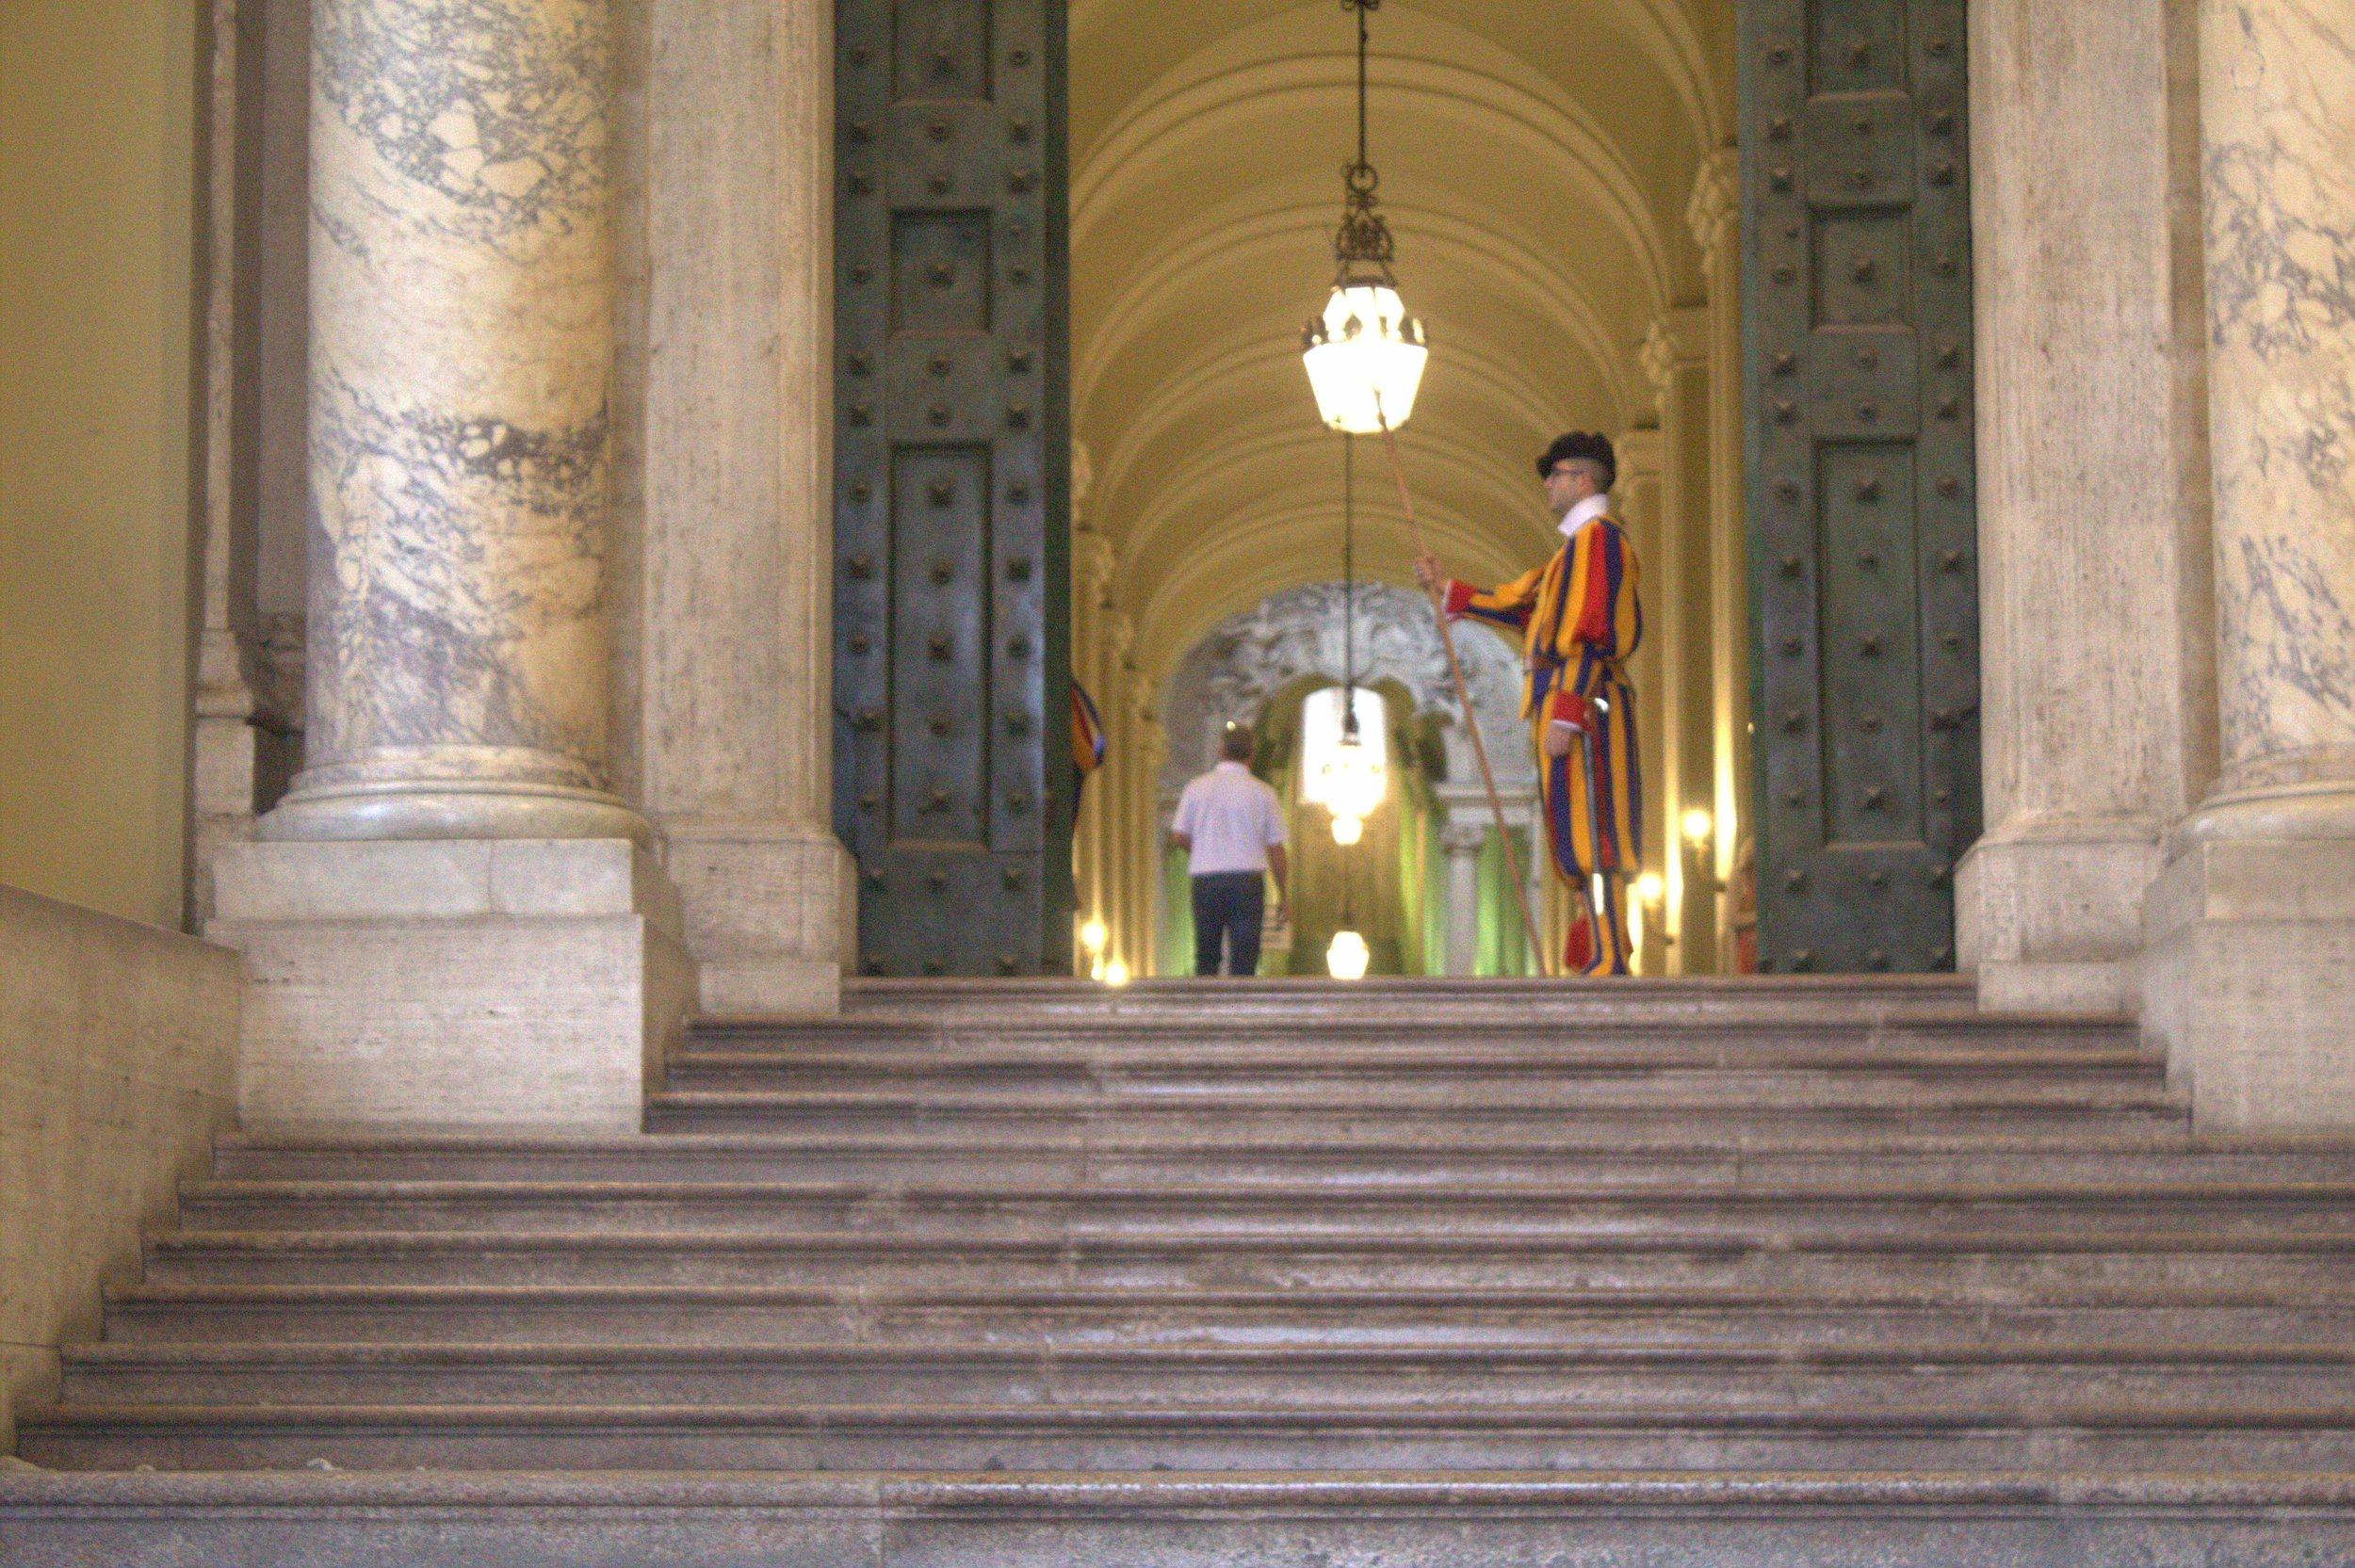 A member of the Swiss Guard stands watch outside of The Vatican in Rome.